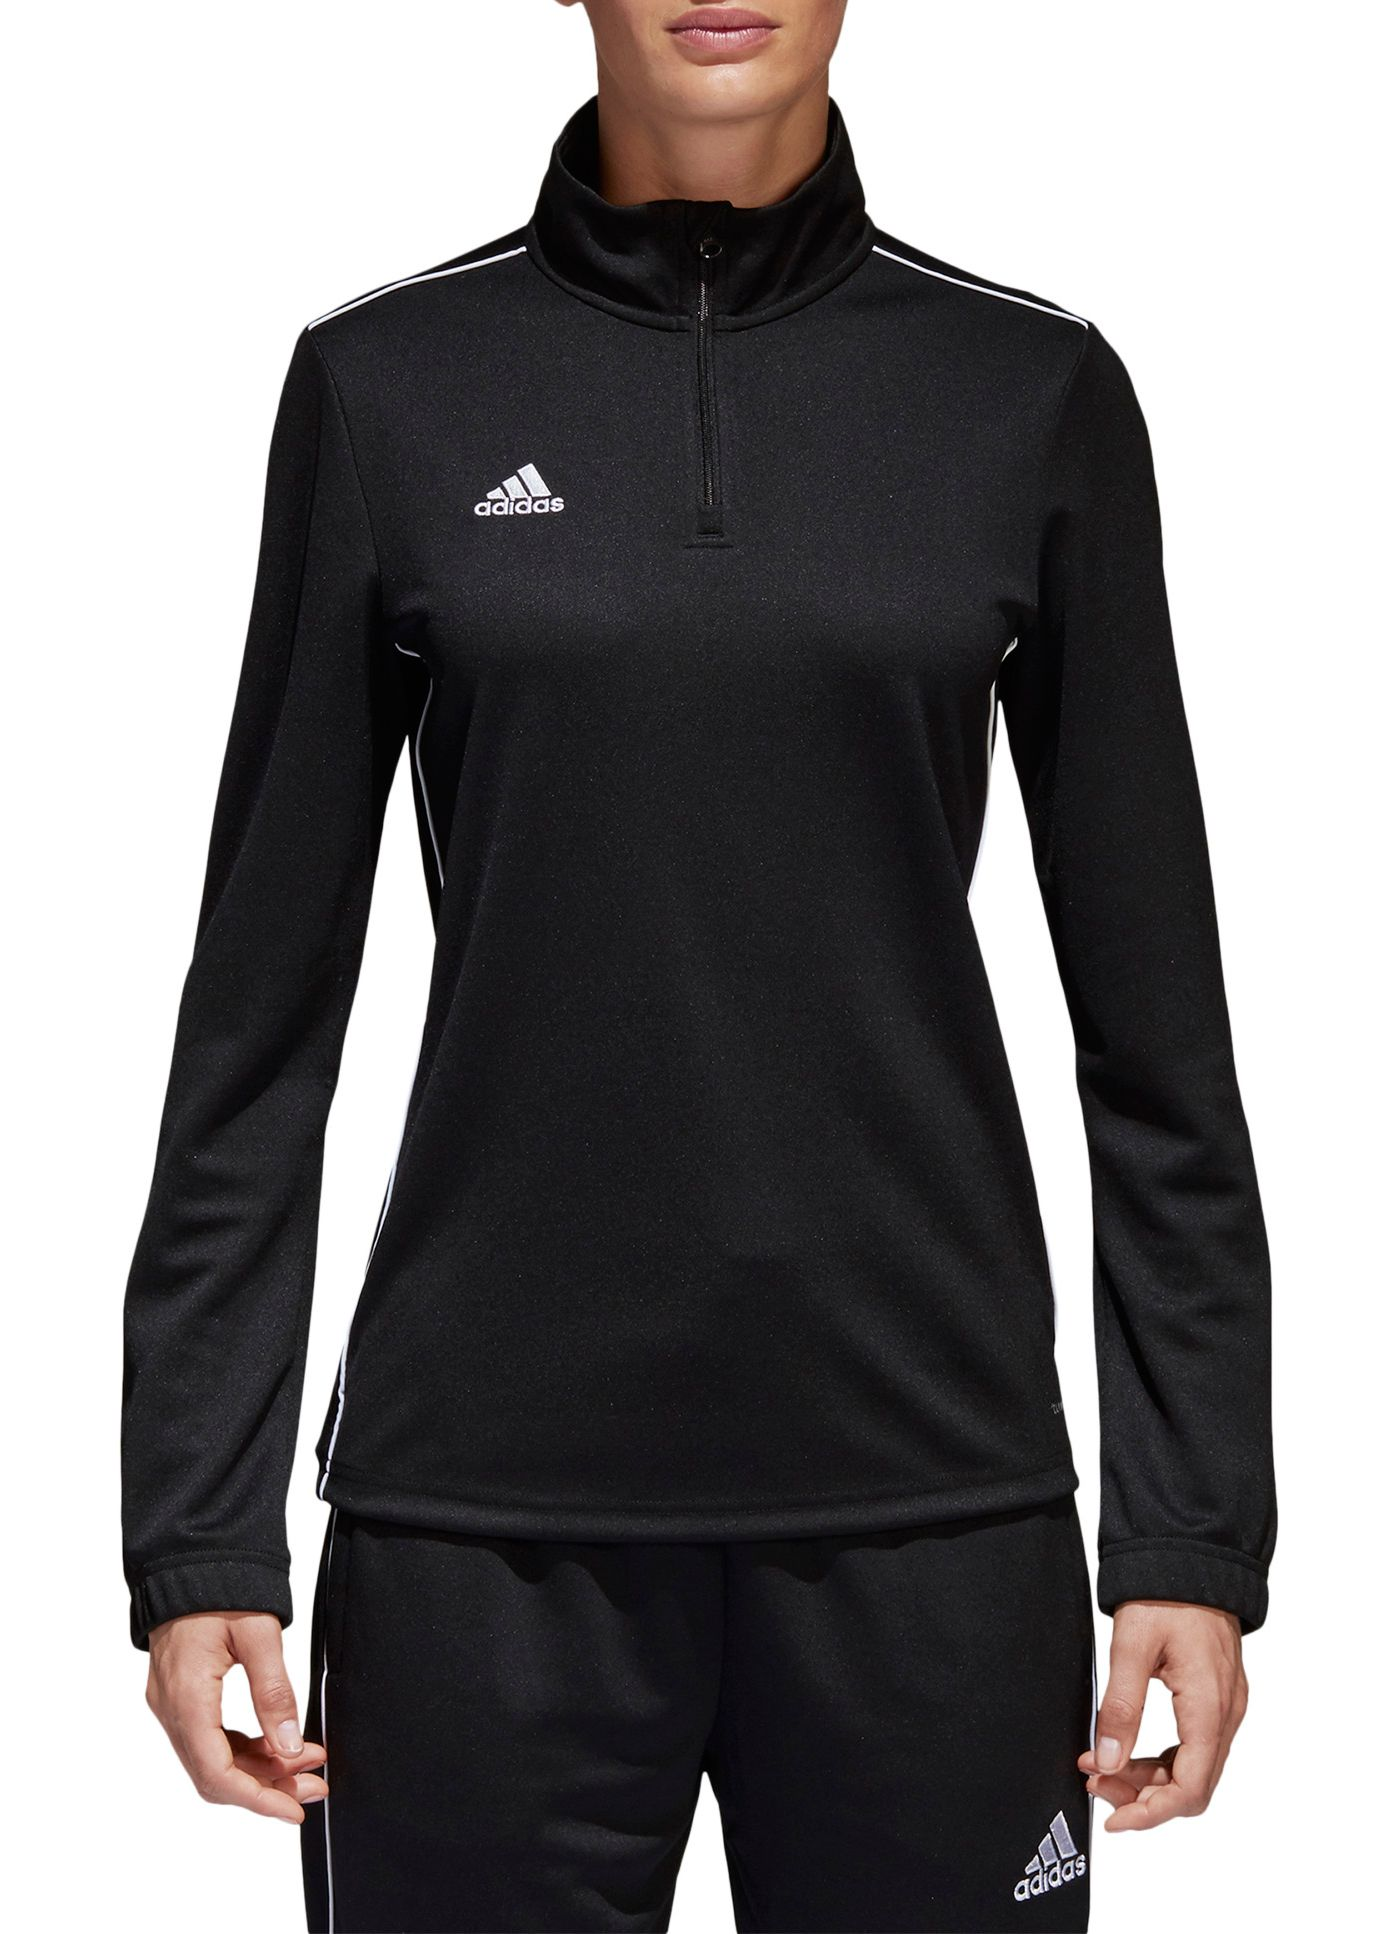 adidas Women's Core 18 Training 1/2 Zip Sweatshirt